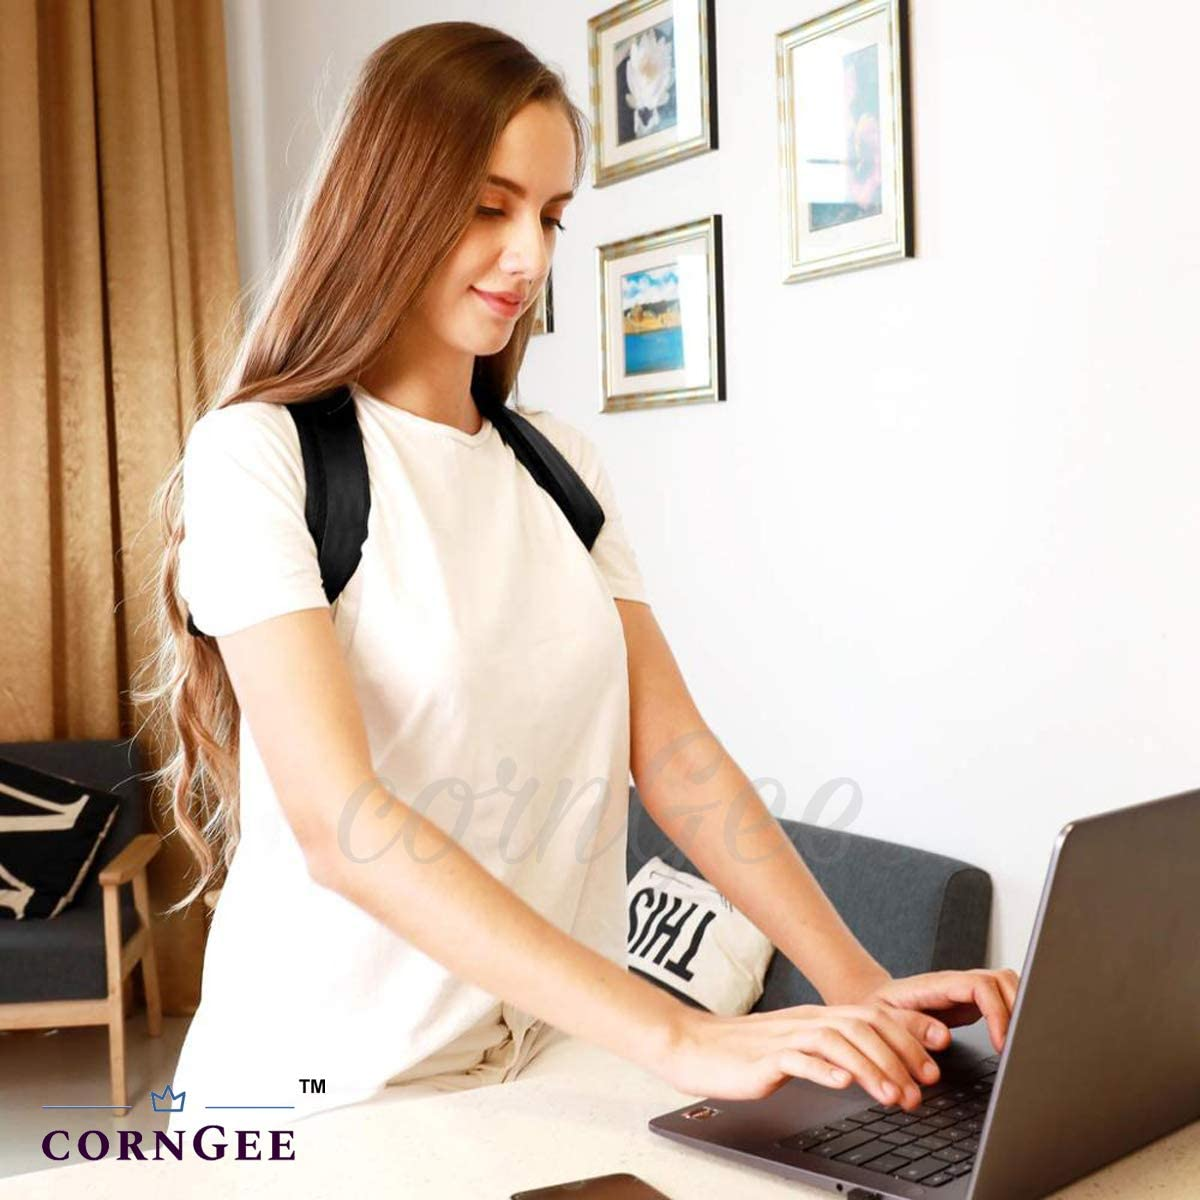 cornGee FDA Registered Posture Corrector for Women Men Comfortable Posture Trainer Upgraded Adjustable Back Straightener Neck and Back Pain Relief Unique Design Spine and Back Support